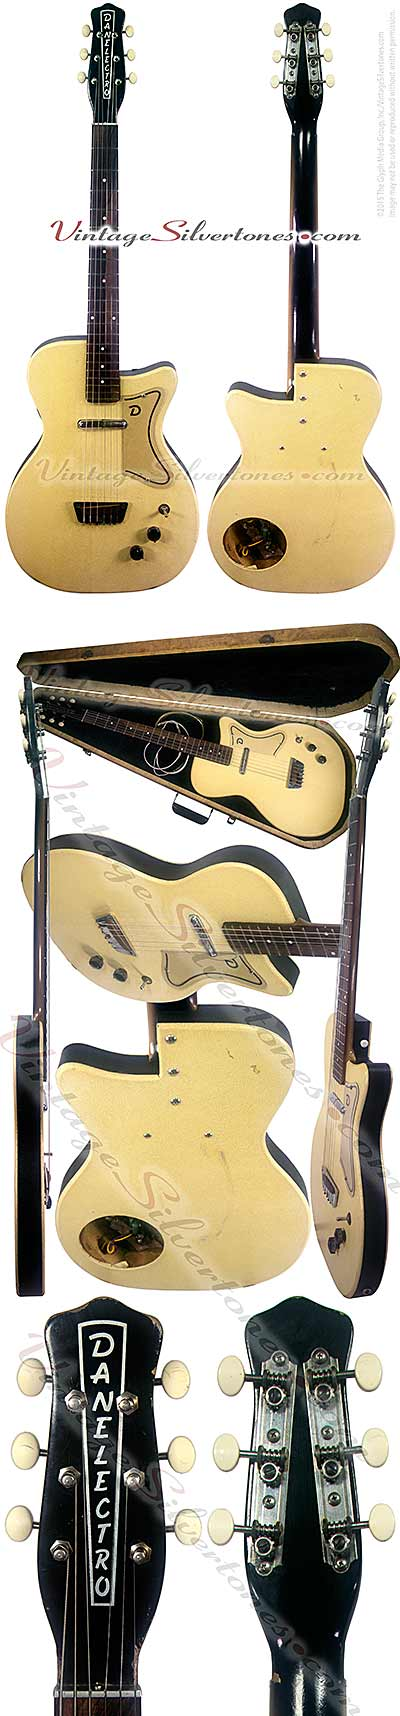 Danelectro U1 - single pickup ivory leatherette electric guitar 1956